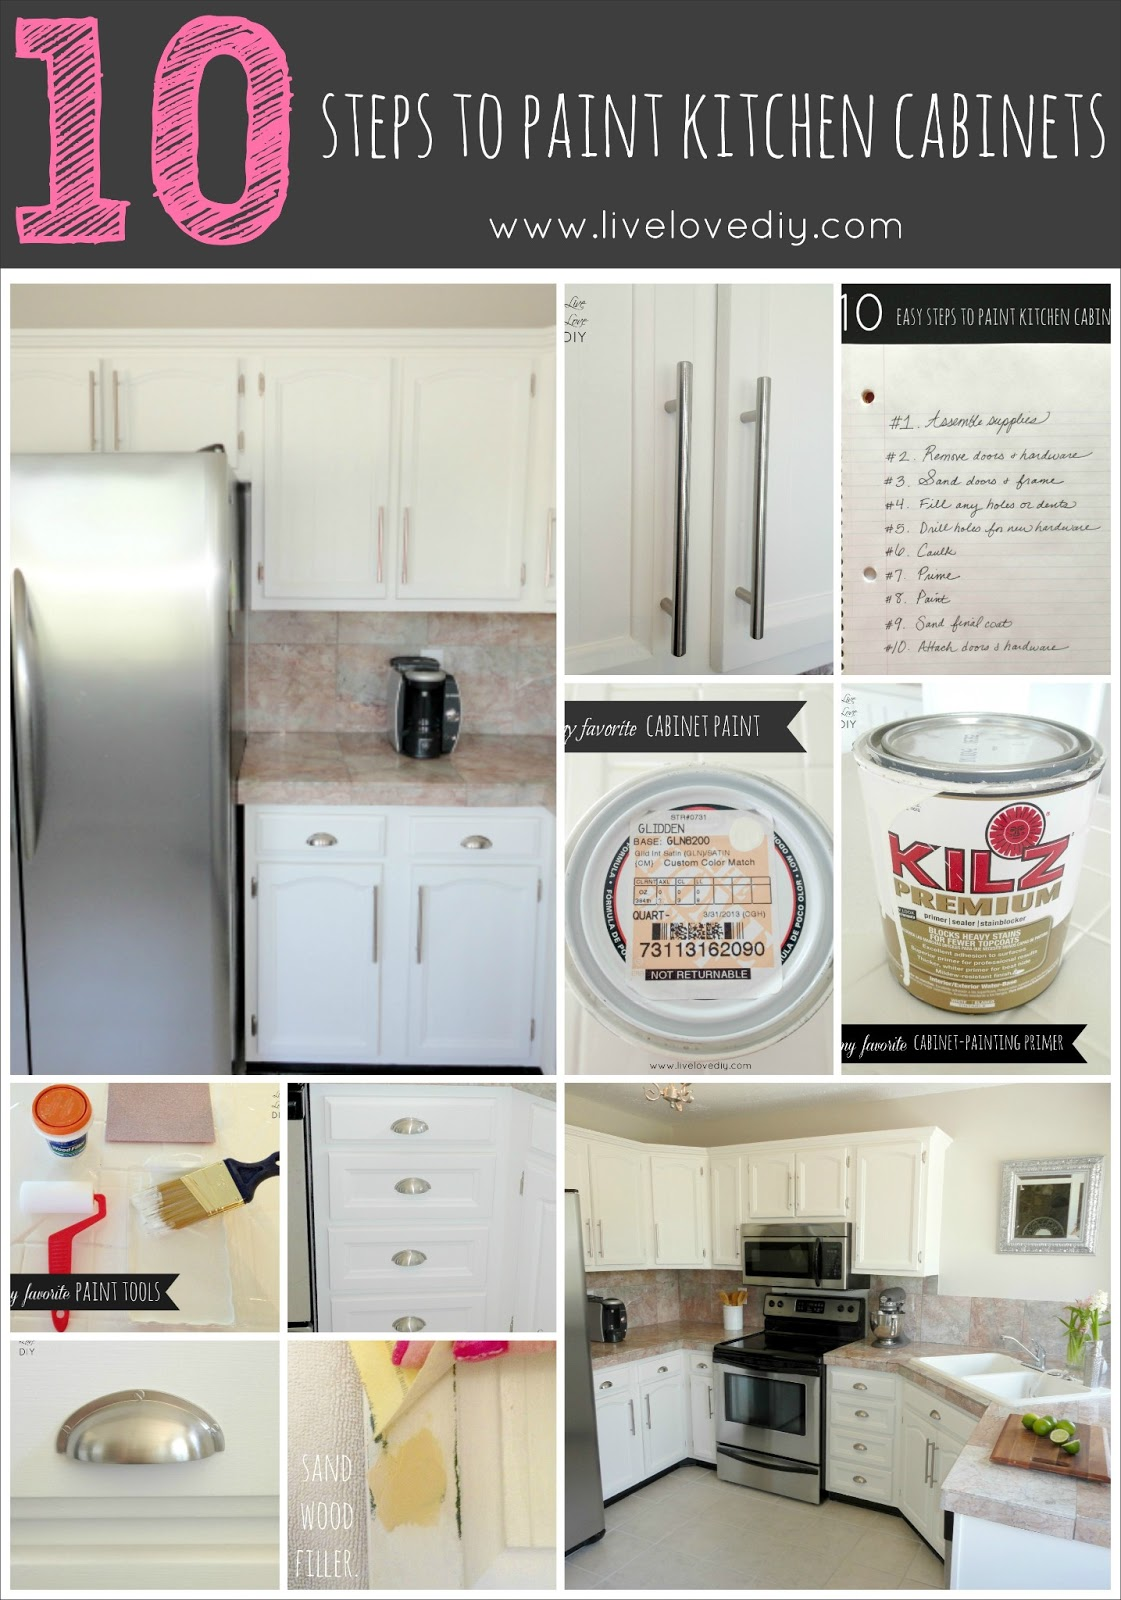 Livelovediy how to paint kitchen cabinets in 10 easy steps for Kitchen cabinets you can paint